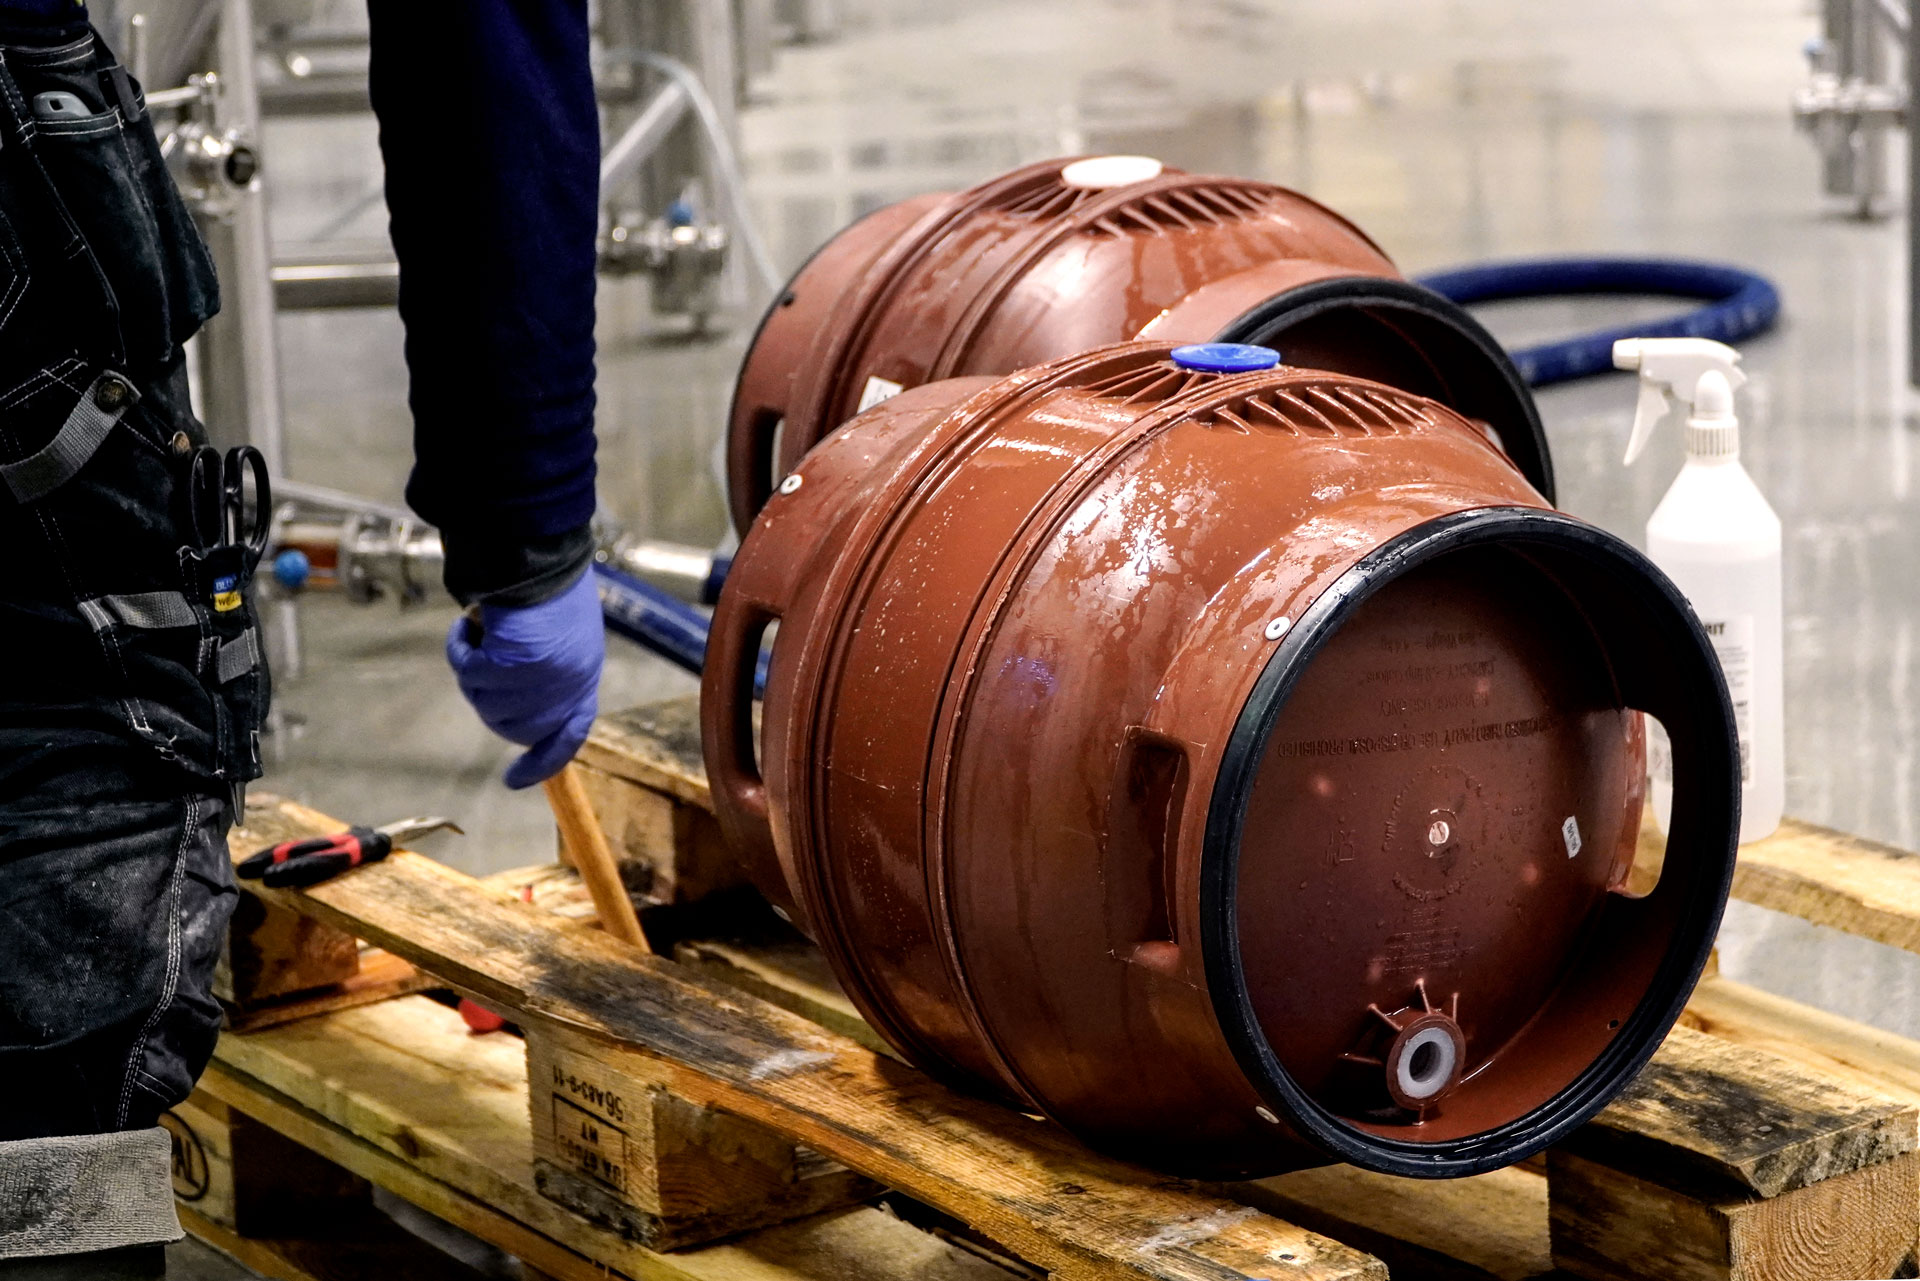 Our brewers filling casks with Malt Beverage, an Amber Lager, brewed by Swedish Craft Brewery Beerbliotek.